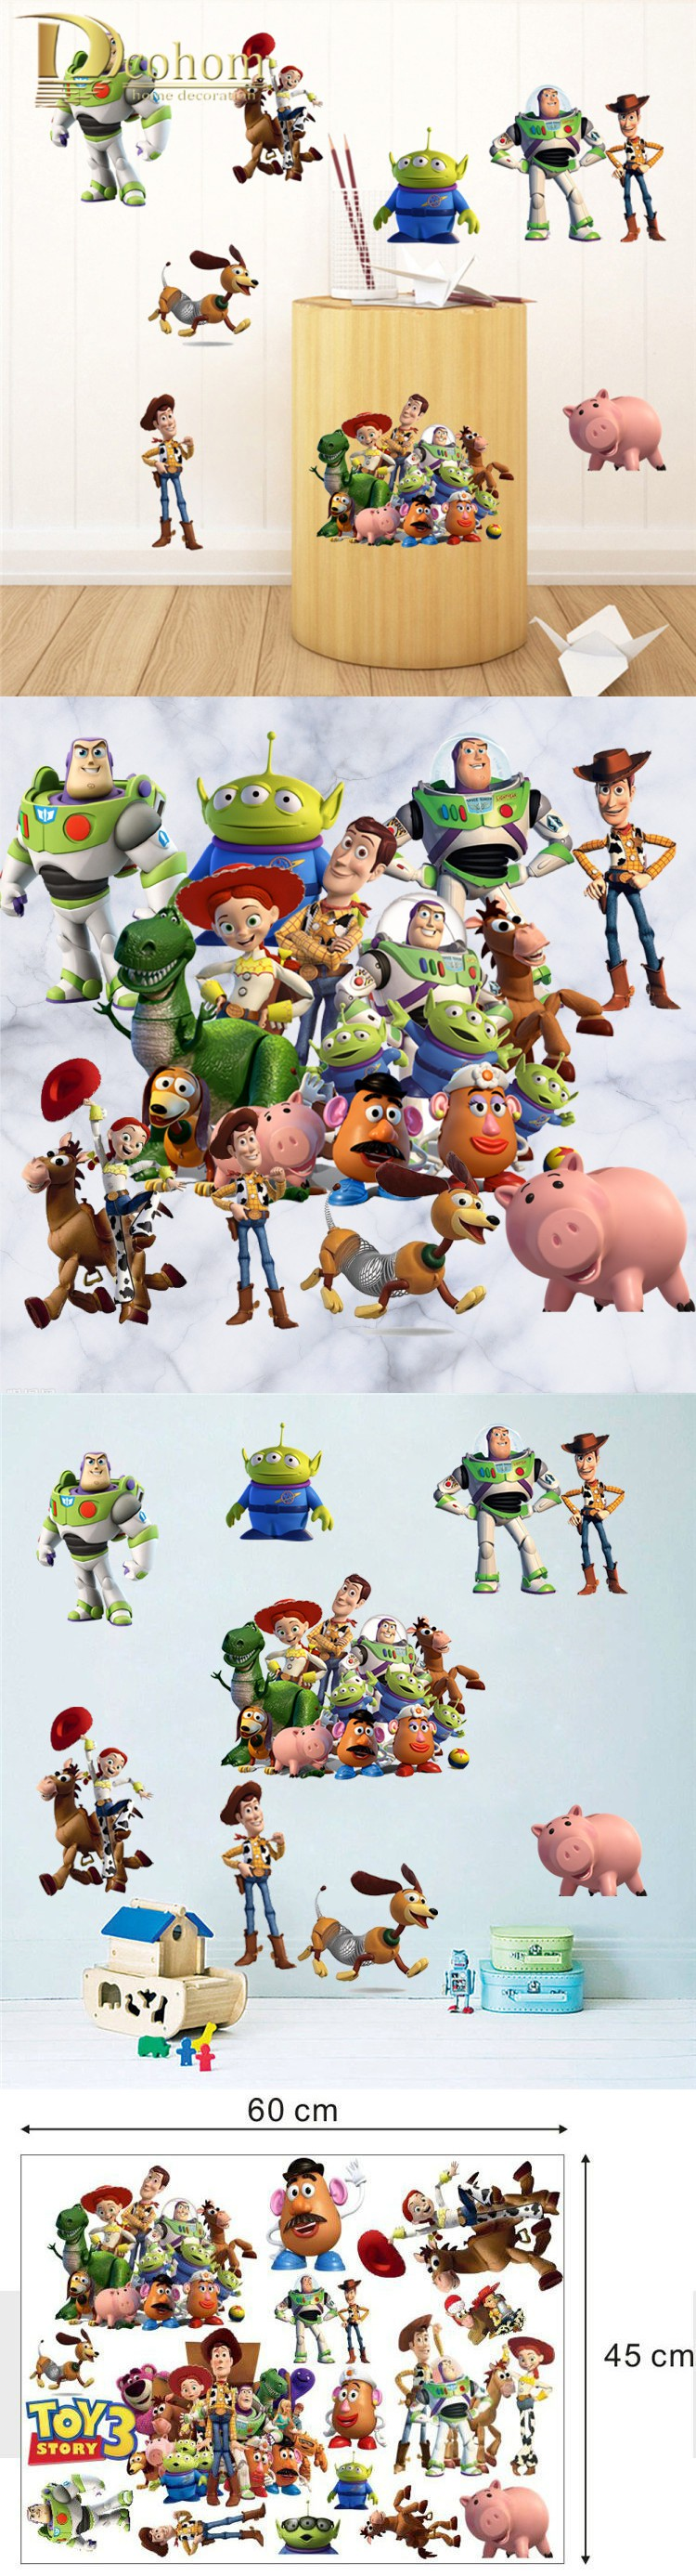 Wall decals toy story woody buzz lightyear diy wall sticker kids wall decals toy story woody buzz lightyear diy wall sticker kids room bedroom decoration vinyl art amipublicfo Image collections